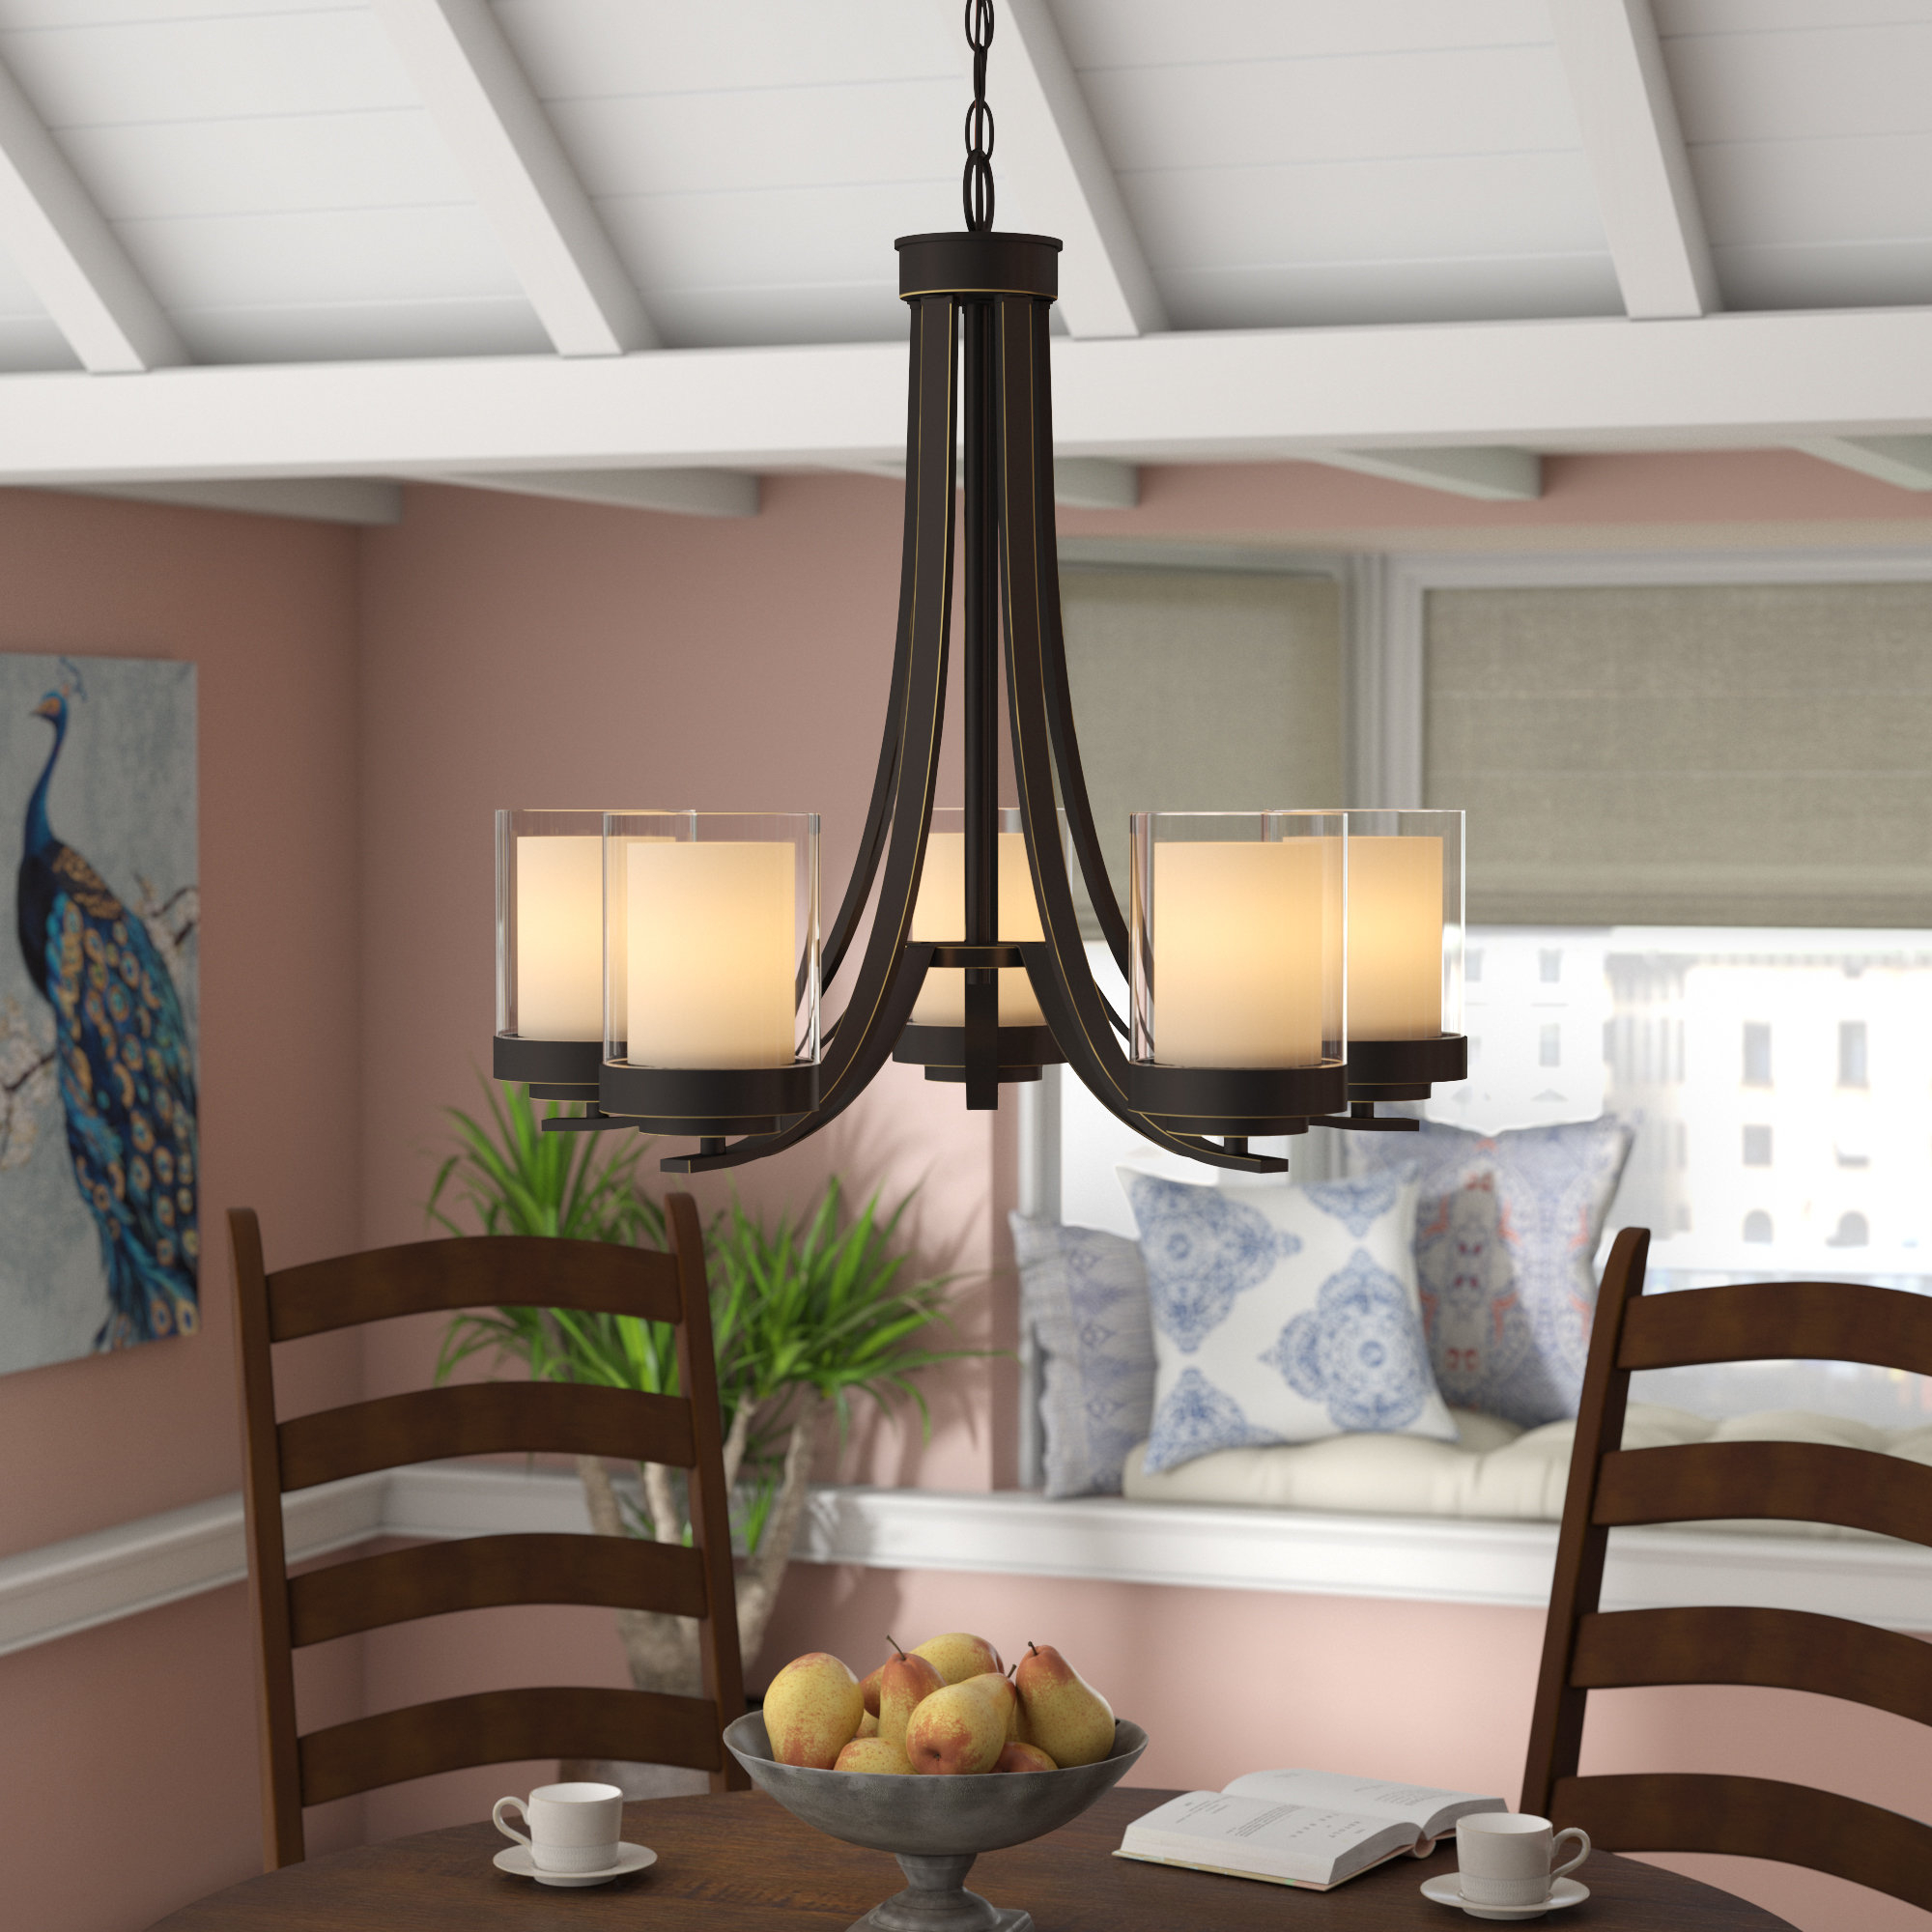 Suki 5 Light Shaded Chandelier | Wayfair Within Suki 5 Light Shaded Chandeliers (View 23 of 30)